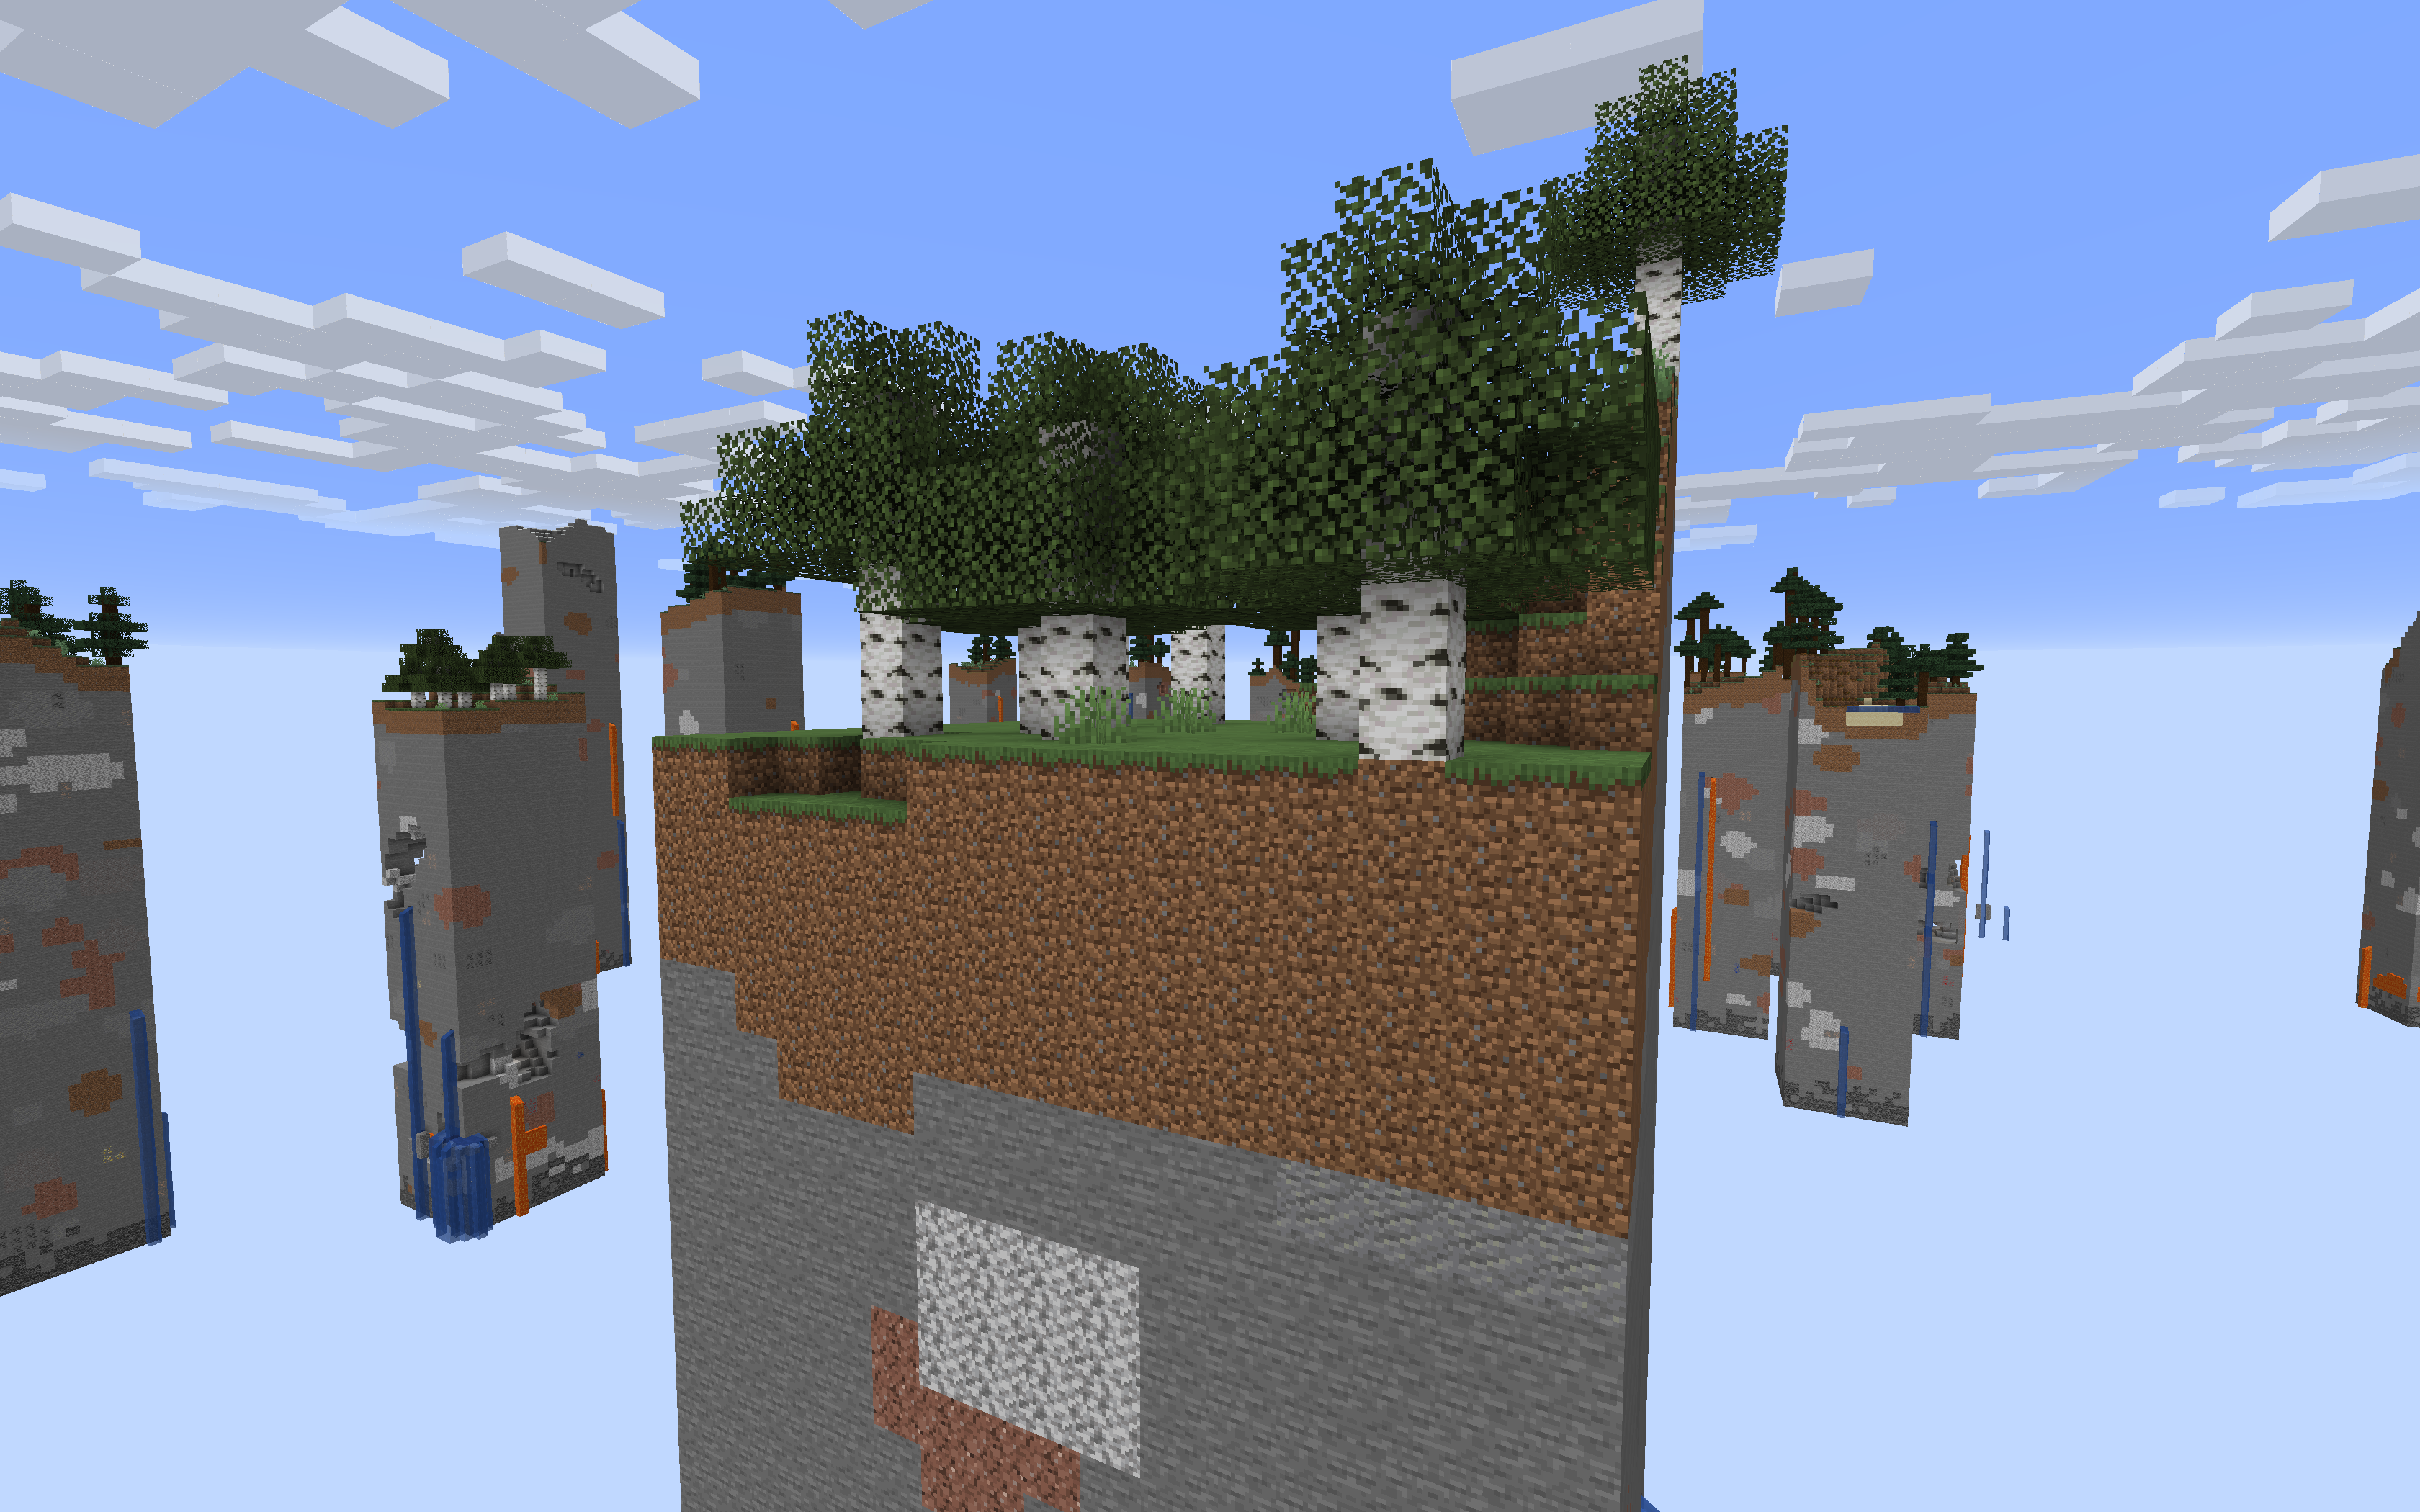 A preview of Skychunk world generation